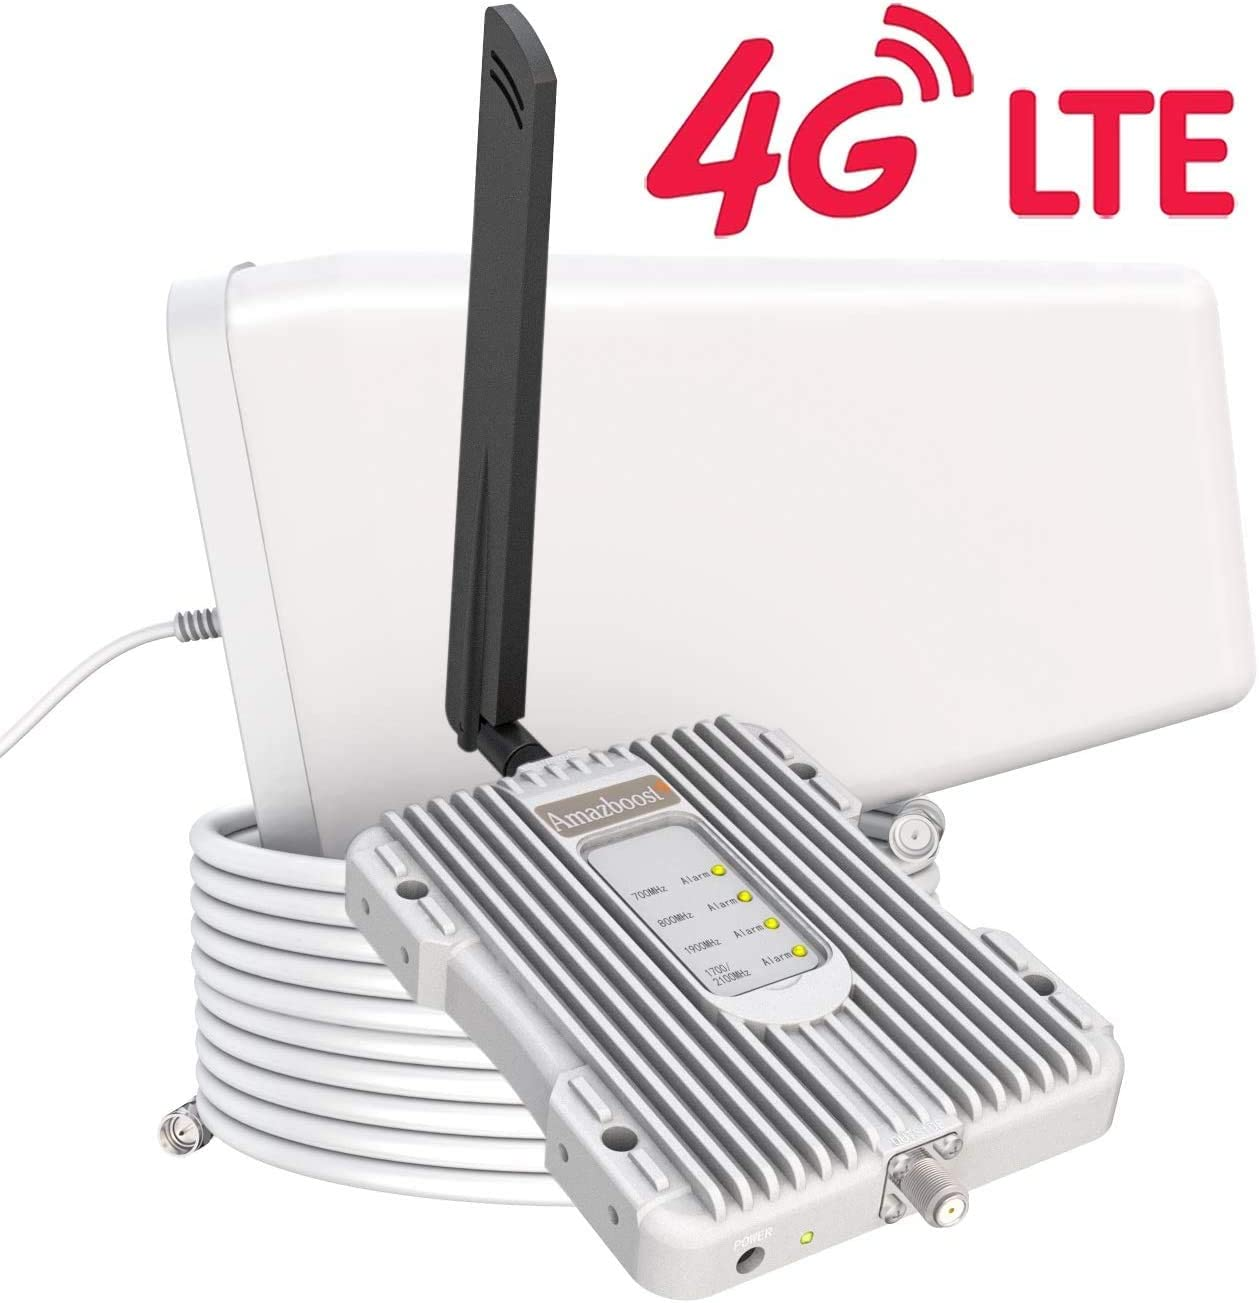 Amazboost Enhances Antenna Cell Phone Booster for Home Office- 4G 3G LTE Data for Verizon, AT&T, T-Mobile, Sprint Supports Up to 2500 Square Foot Area